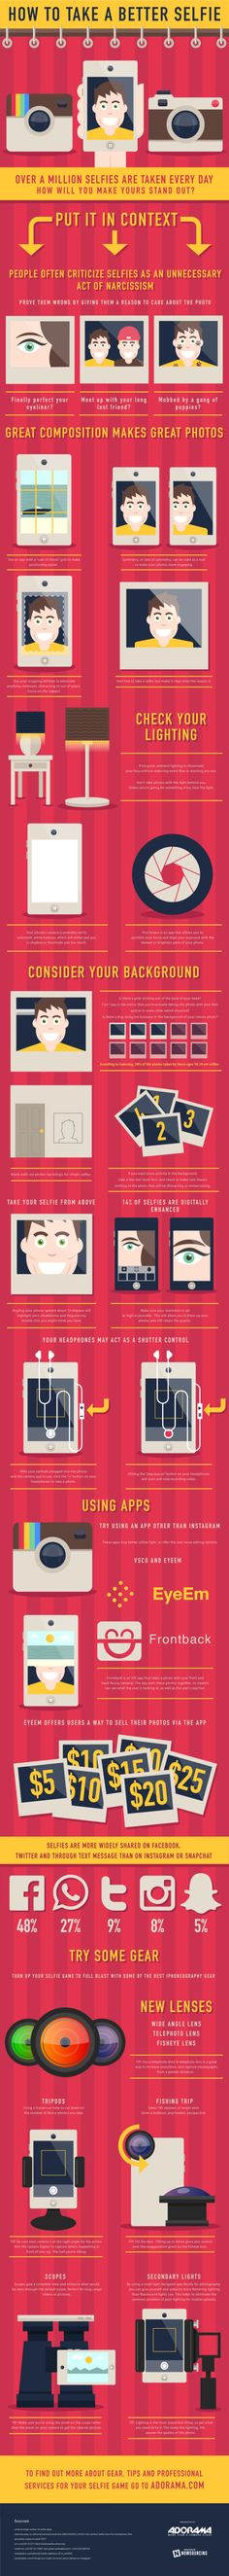 How to Take a Better #Selfie [INFOGRAPHIC]